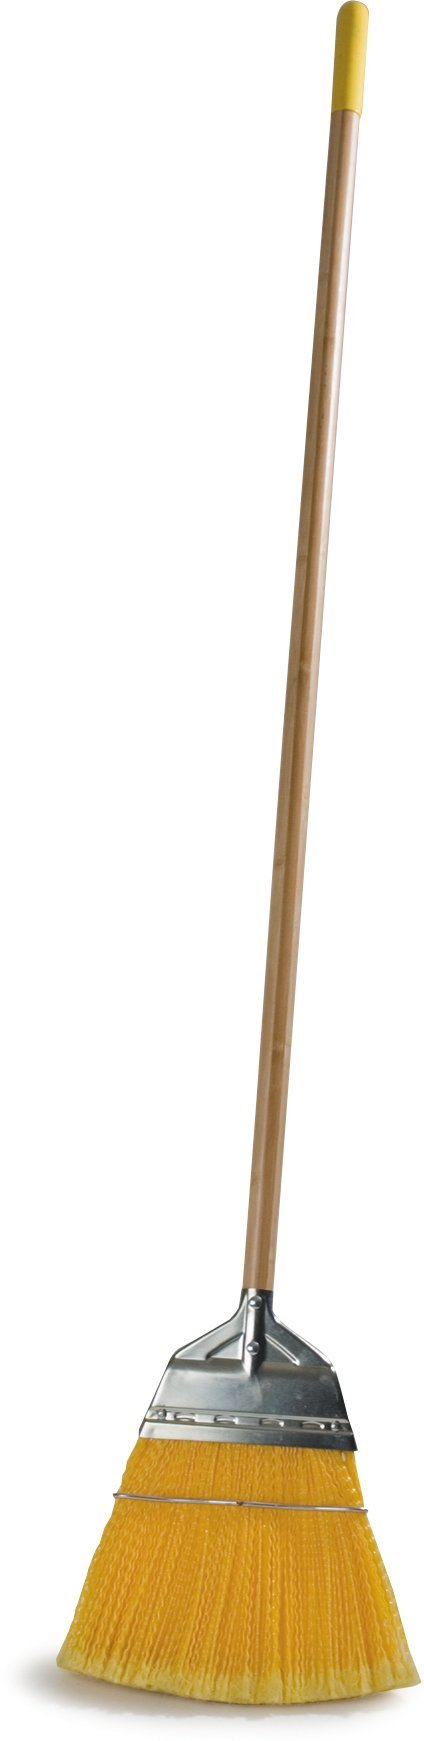 Carlisle 4564304 Wood Handle Lobby Broom with Metal Top, Polypropylene Bristles, 55'' O'all Lg. x 12'' W, Yellow (Case of 12)